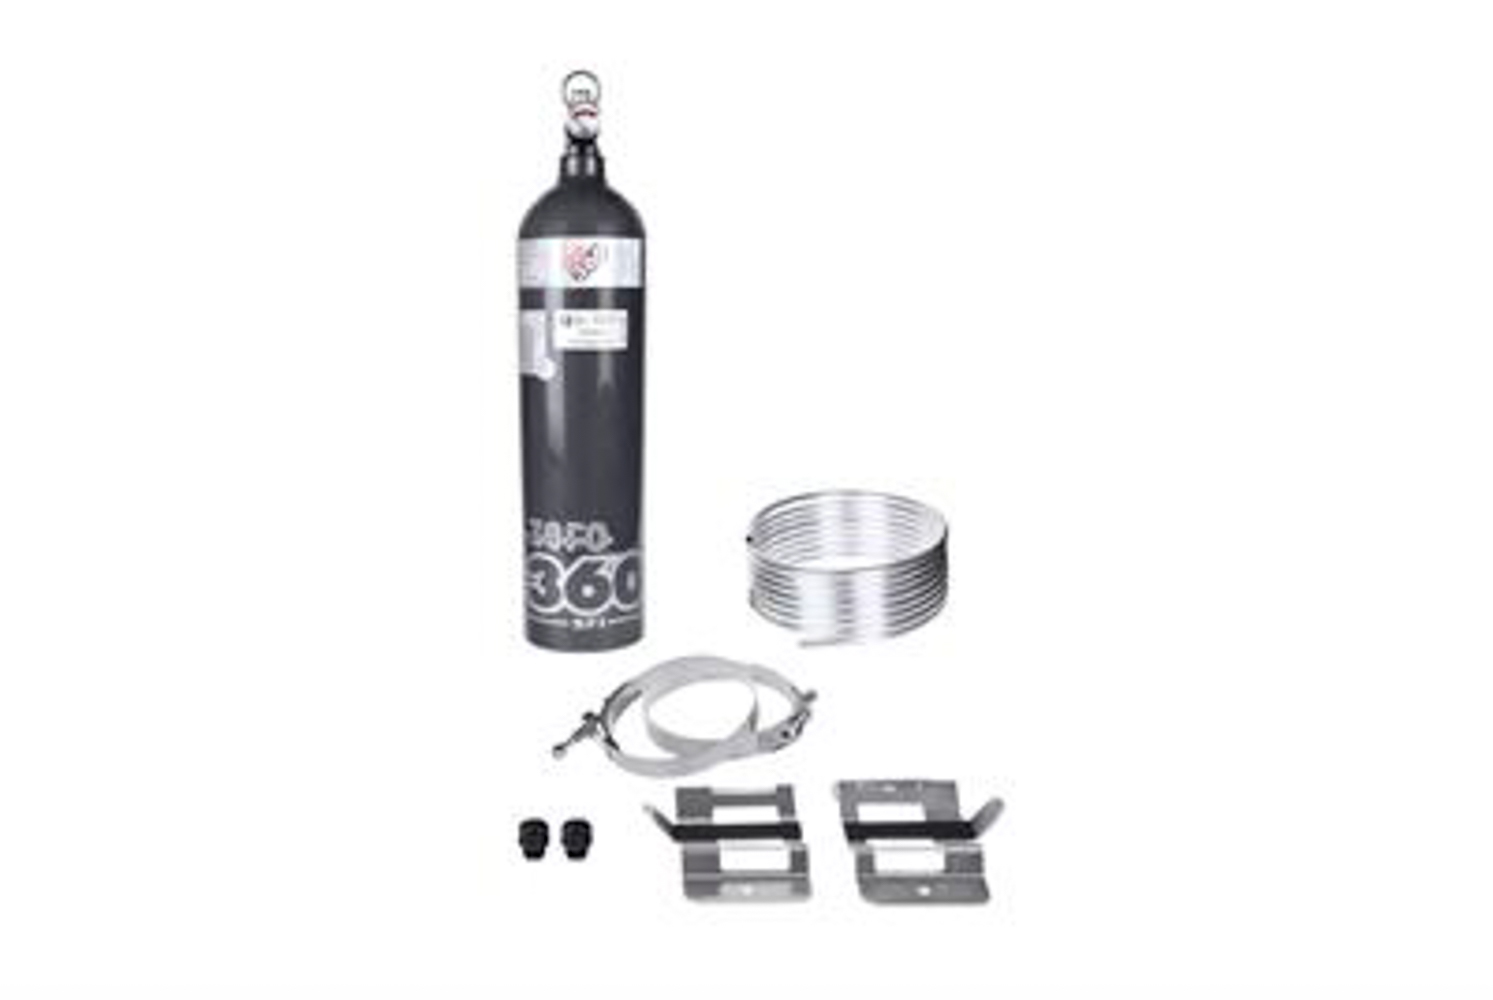 Lifeline USA 103-101-003 Fire Suppression System, Zero 360, Novec 1230, 5.0 lb Bottle, Aluminum Tubing, Fittings / Hose / Mount, Kit